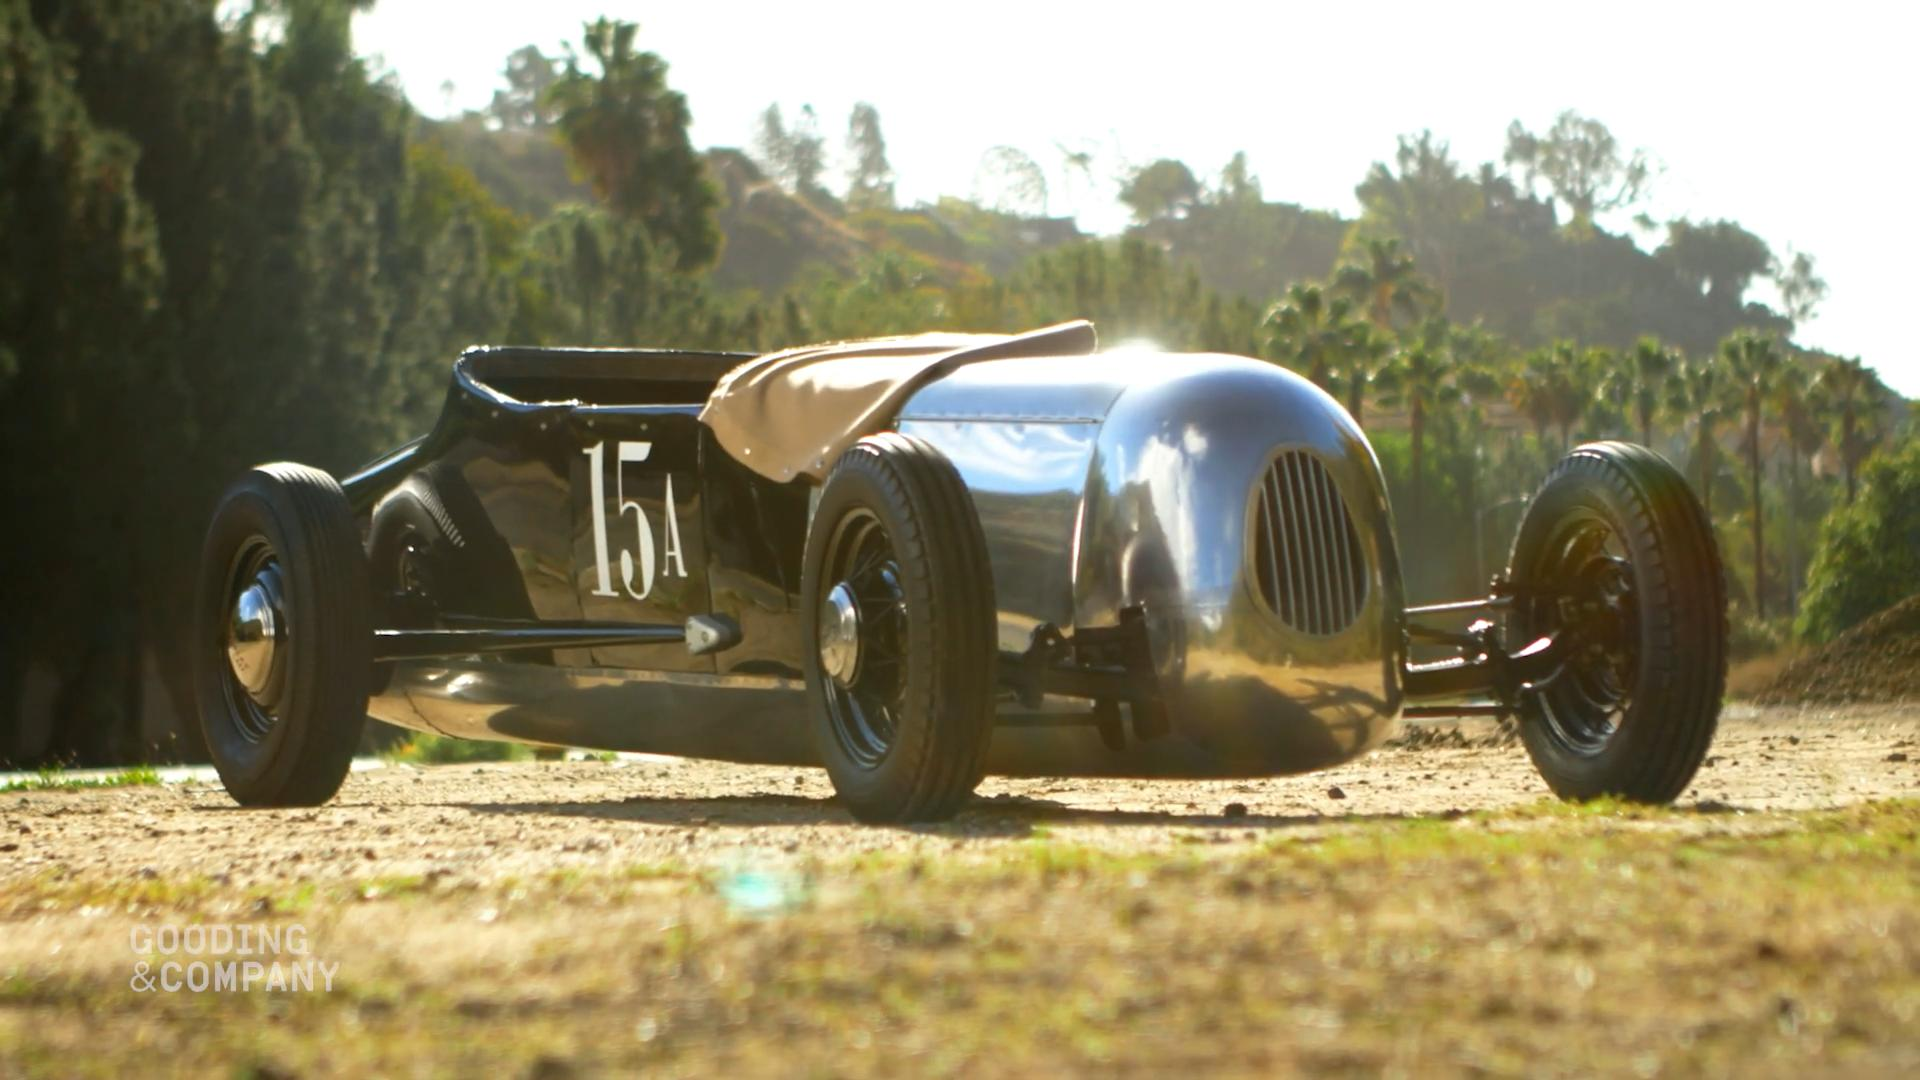 This 1948 Spurgin-Giovanine Roadster is hot rod royalty